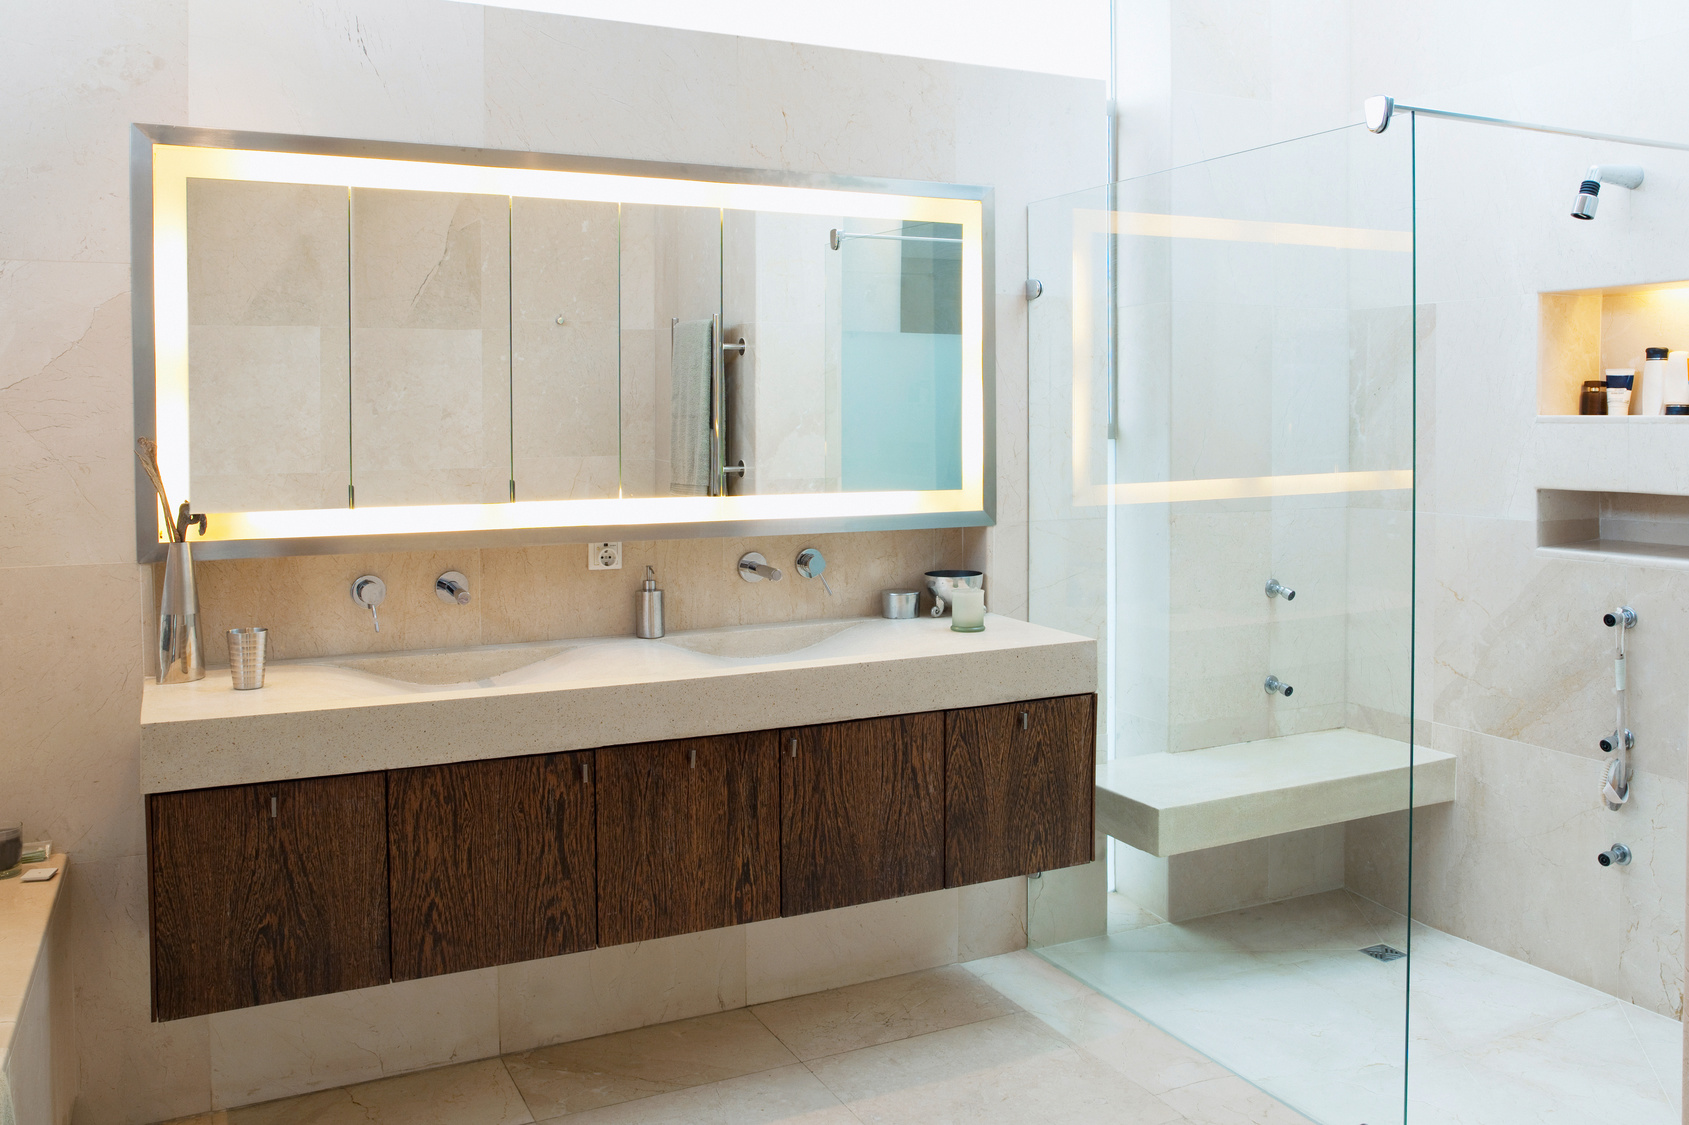 7 Design Mistakes To Avoid In Your Hall: 7 Bathroom Remodeling Mistakes You Need To Avoid